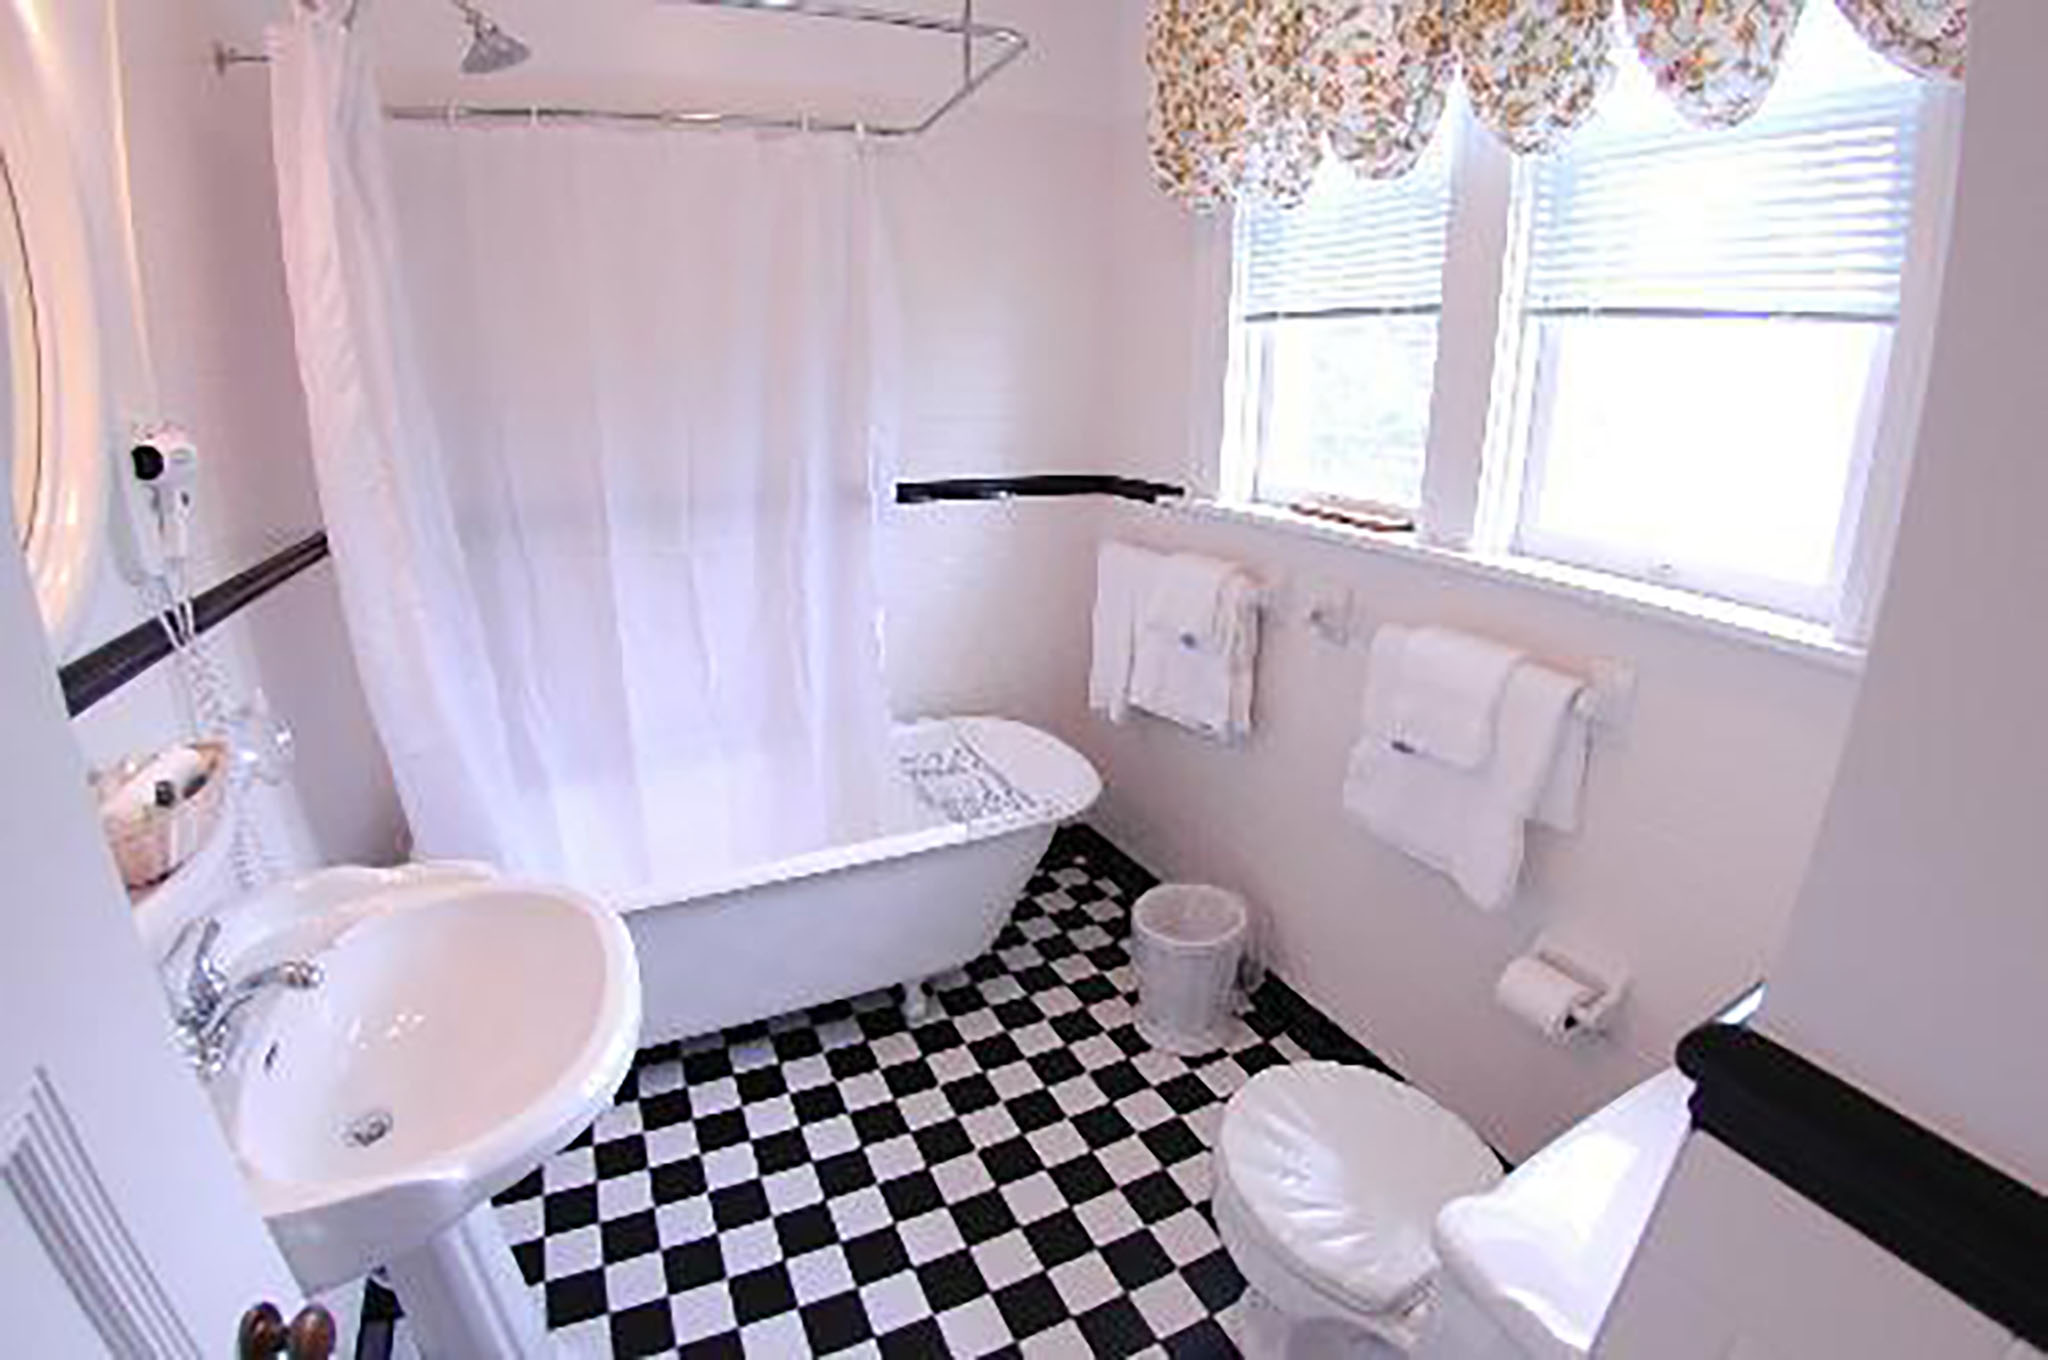 King Suite bathroom 1